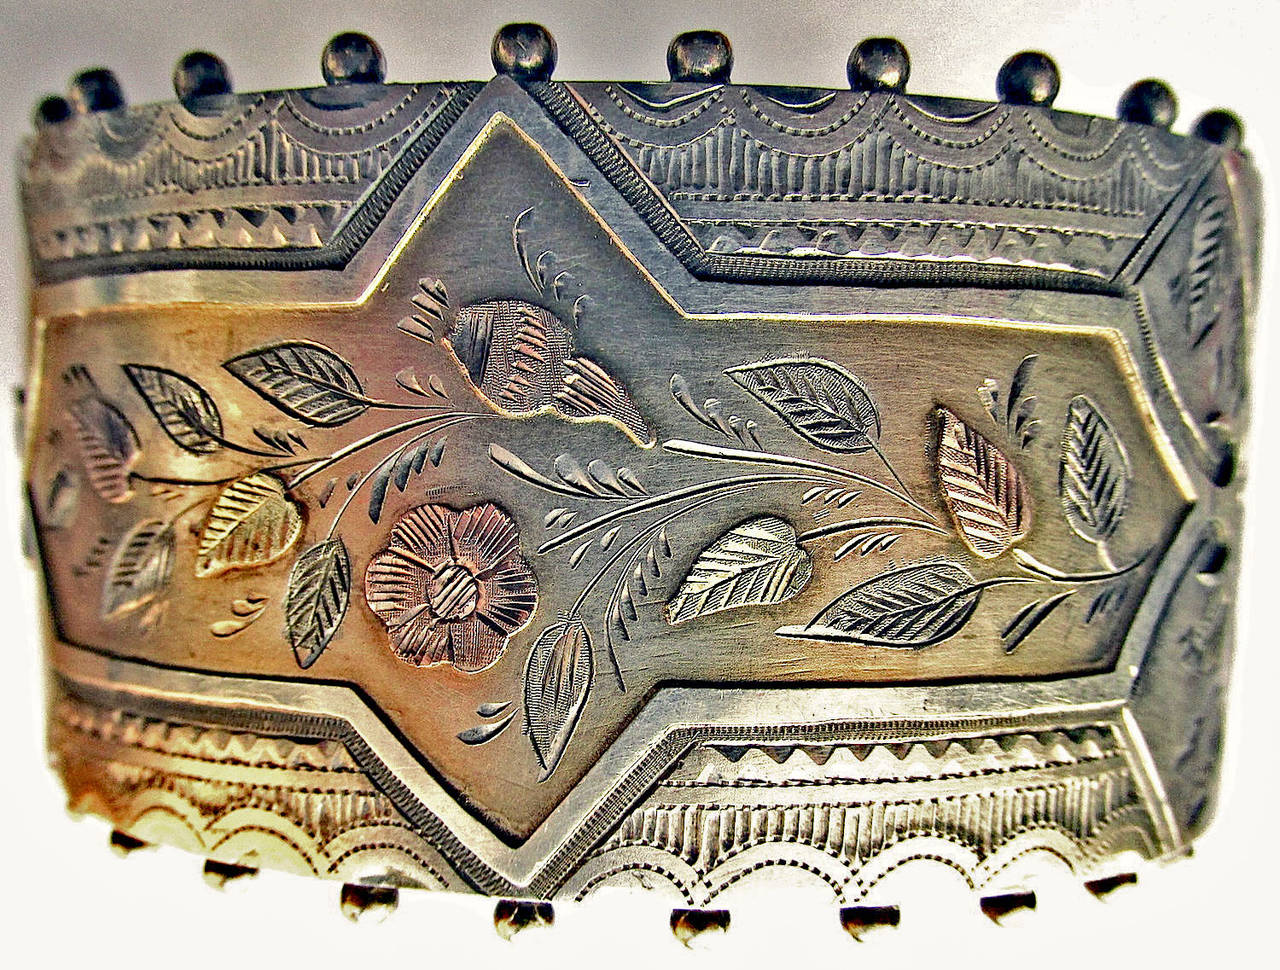 Antique Silver Floral Motif Cuff Bracelet In Excellent Condition For Sale In Baltimore, MD